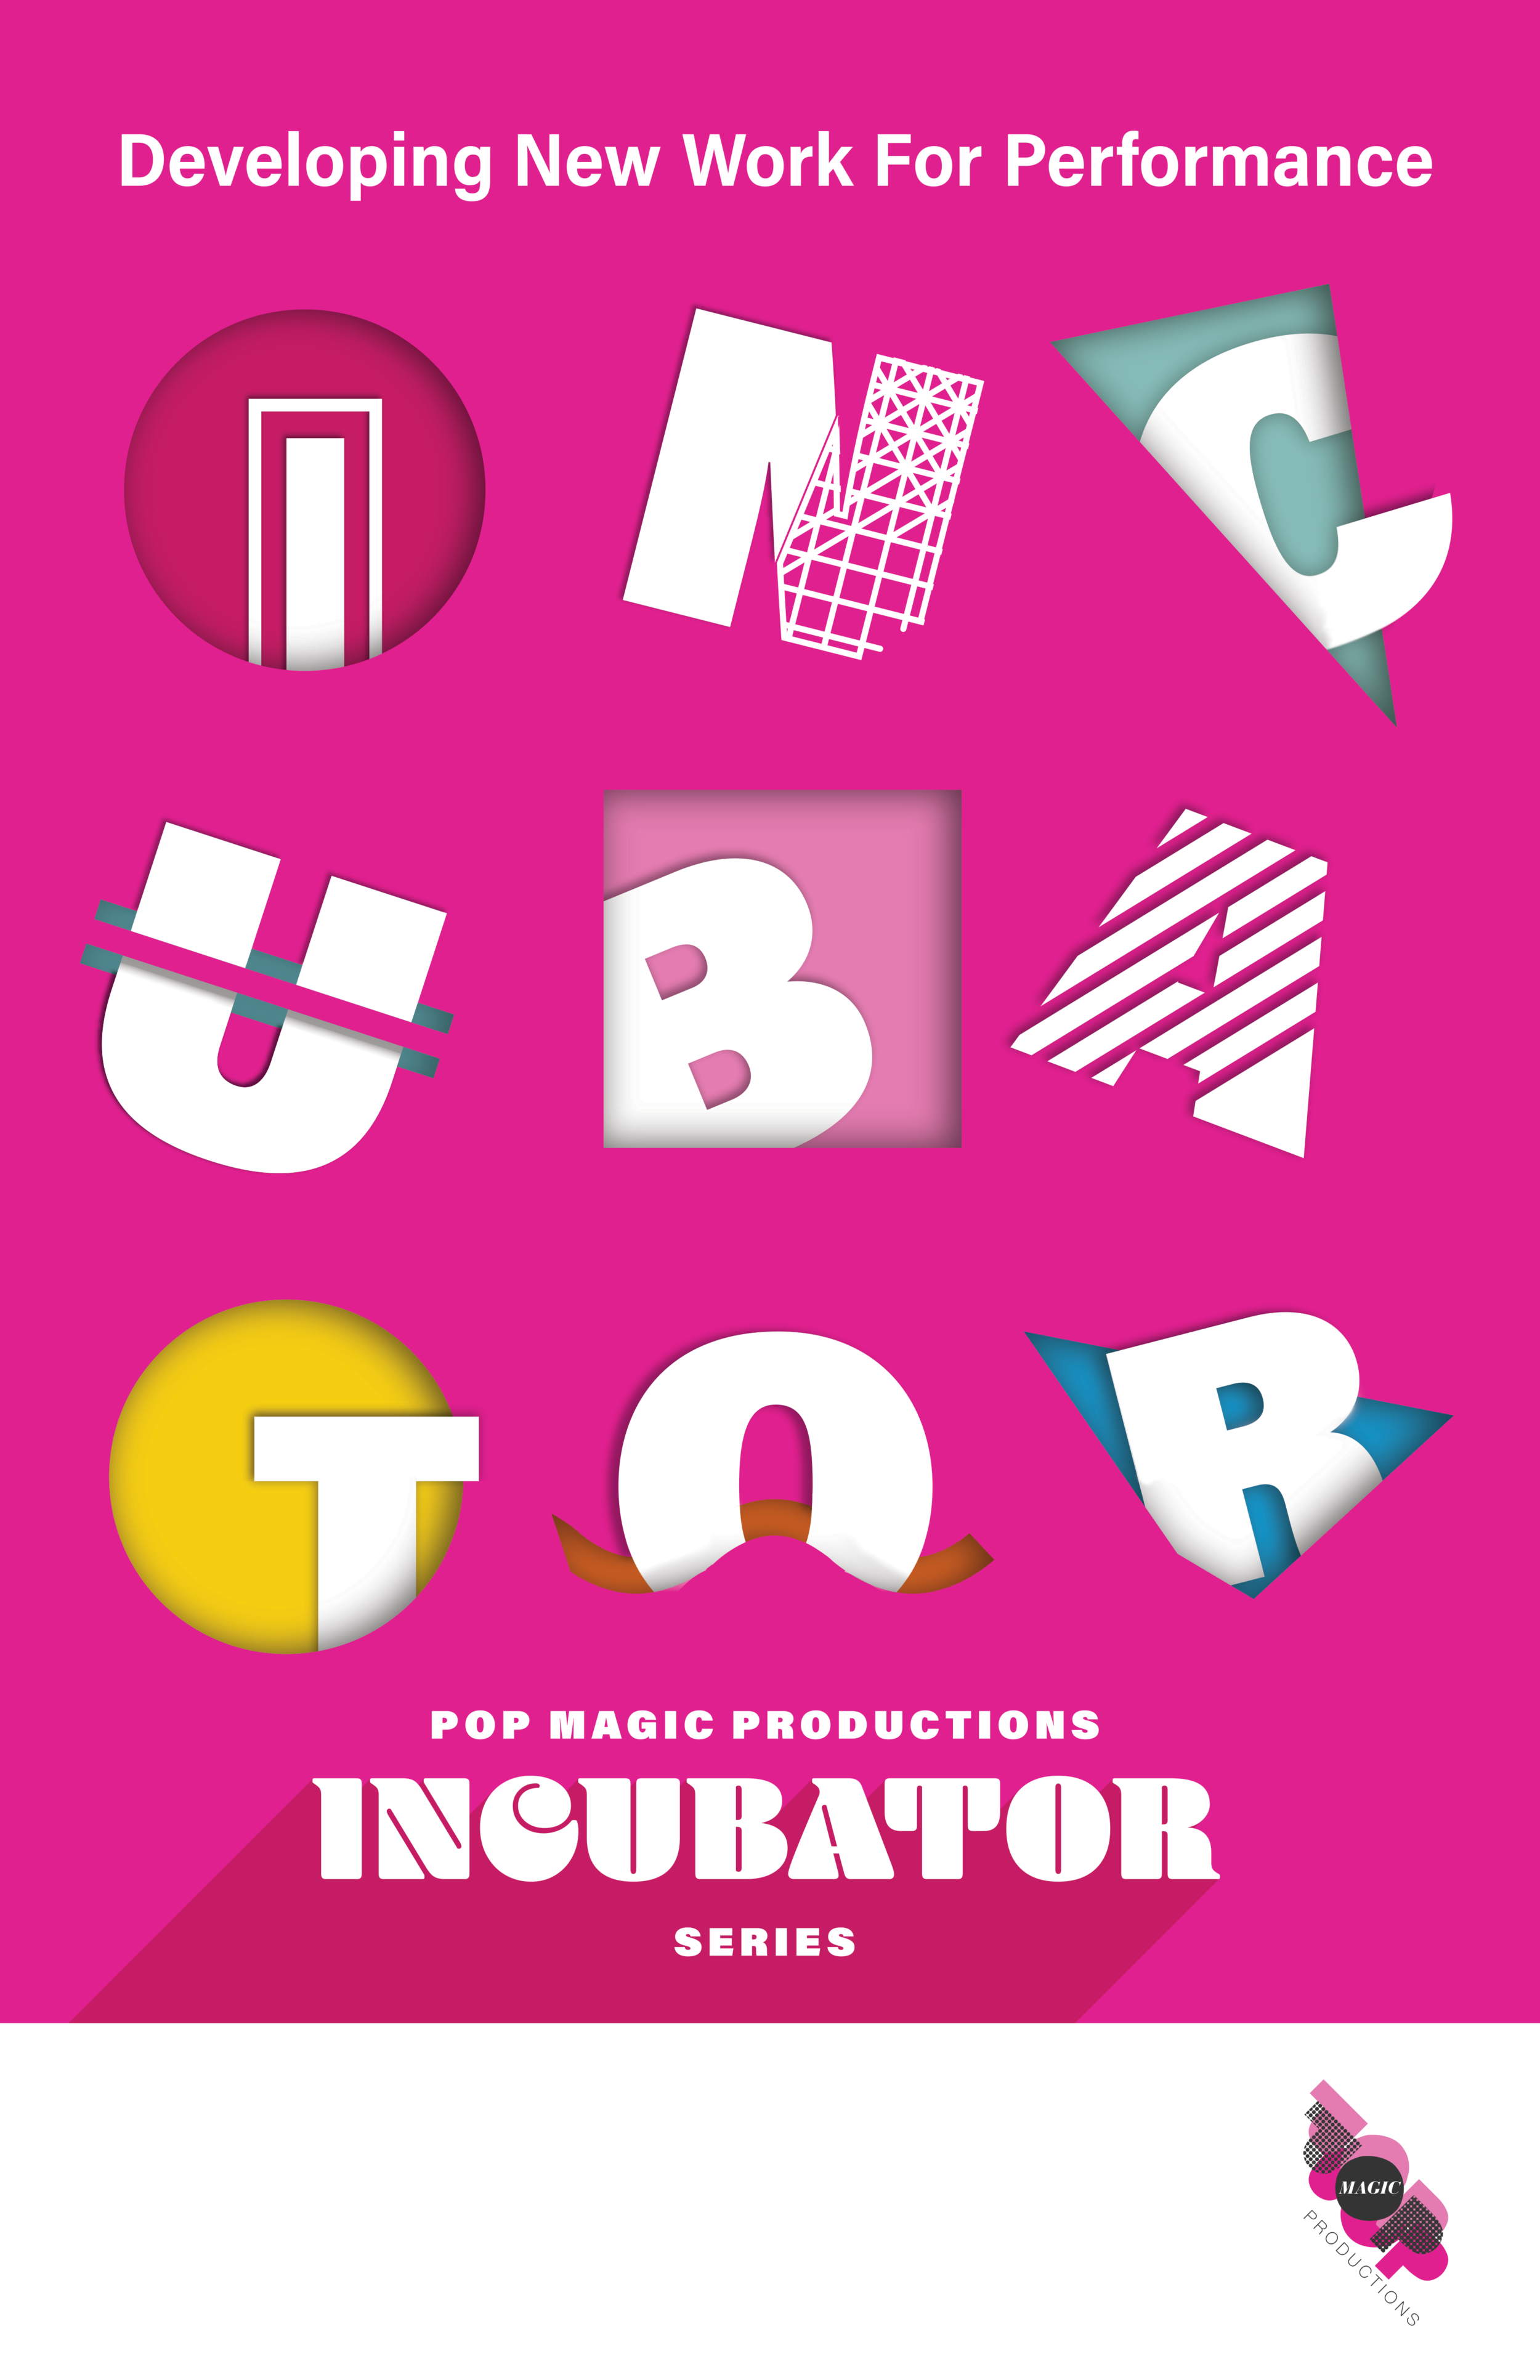 Apply here to be considered for our incubator series!